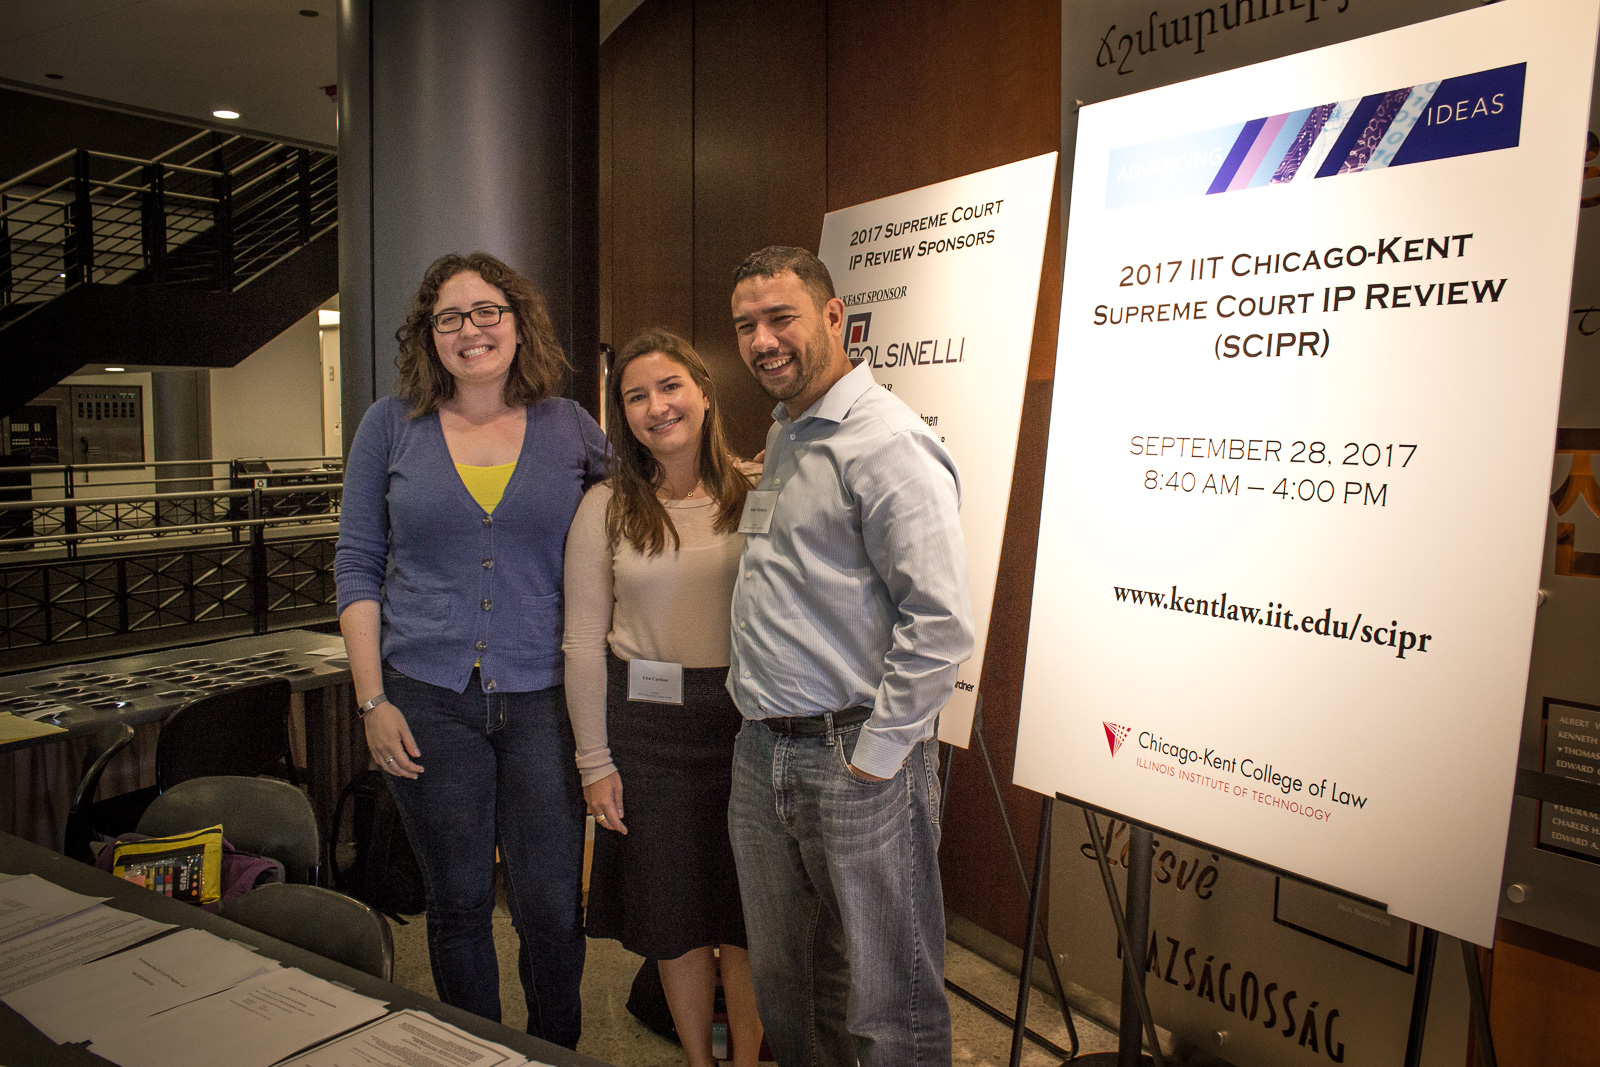 IPLS Leaders at SCIPR 2017